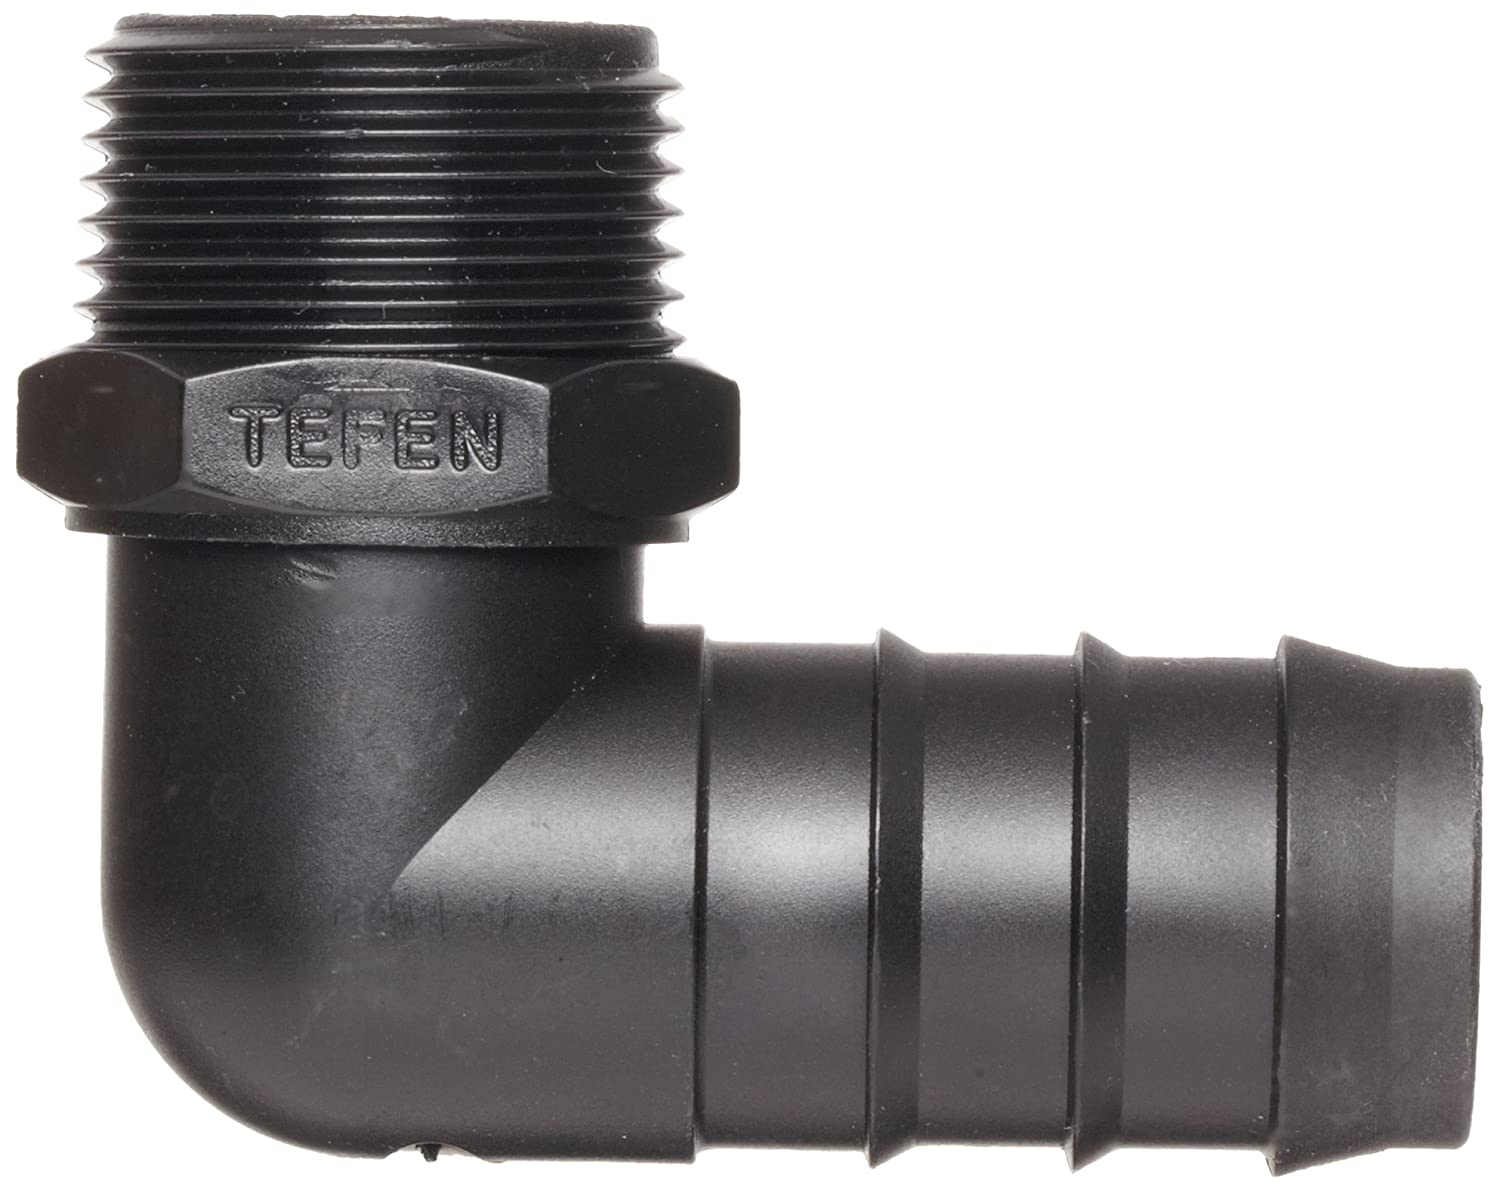 Pack of 10 12 mm Hose OD x 1//2 BSPT Male Tefen Polypropylene Hose Fitting 90 Degree Elbow Adapter Pack of 10 12 mm Hose OD x 1//2 BSPT Male Black Seelye Acquisitions 12456912082